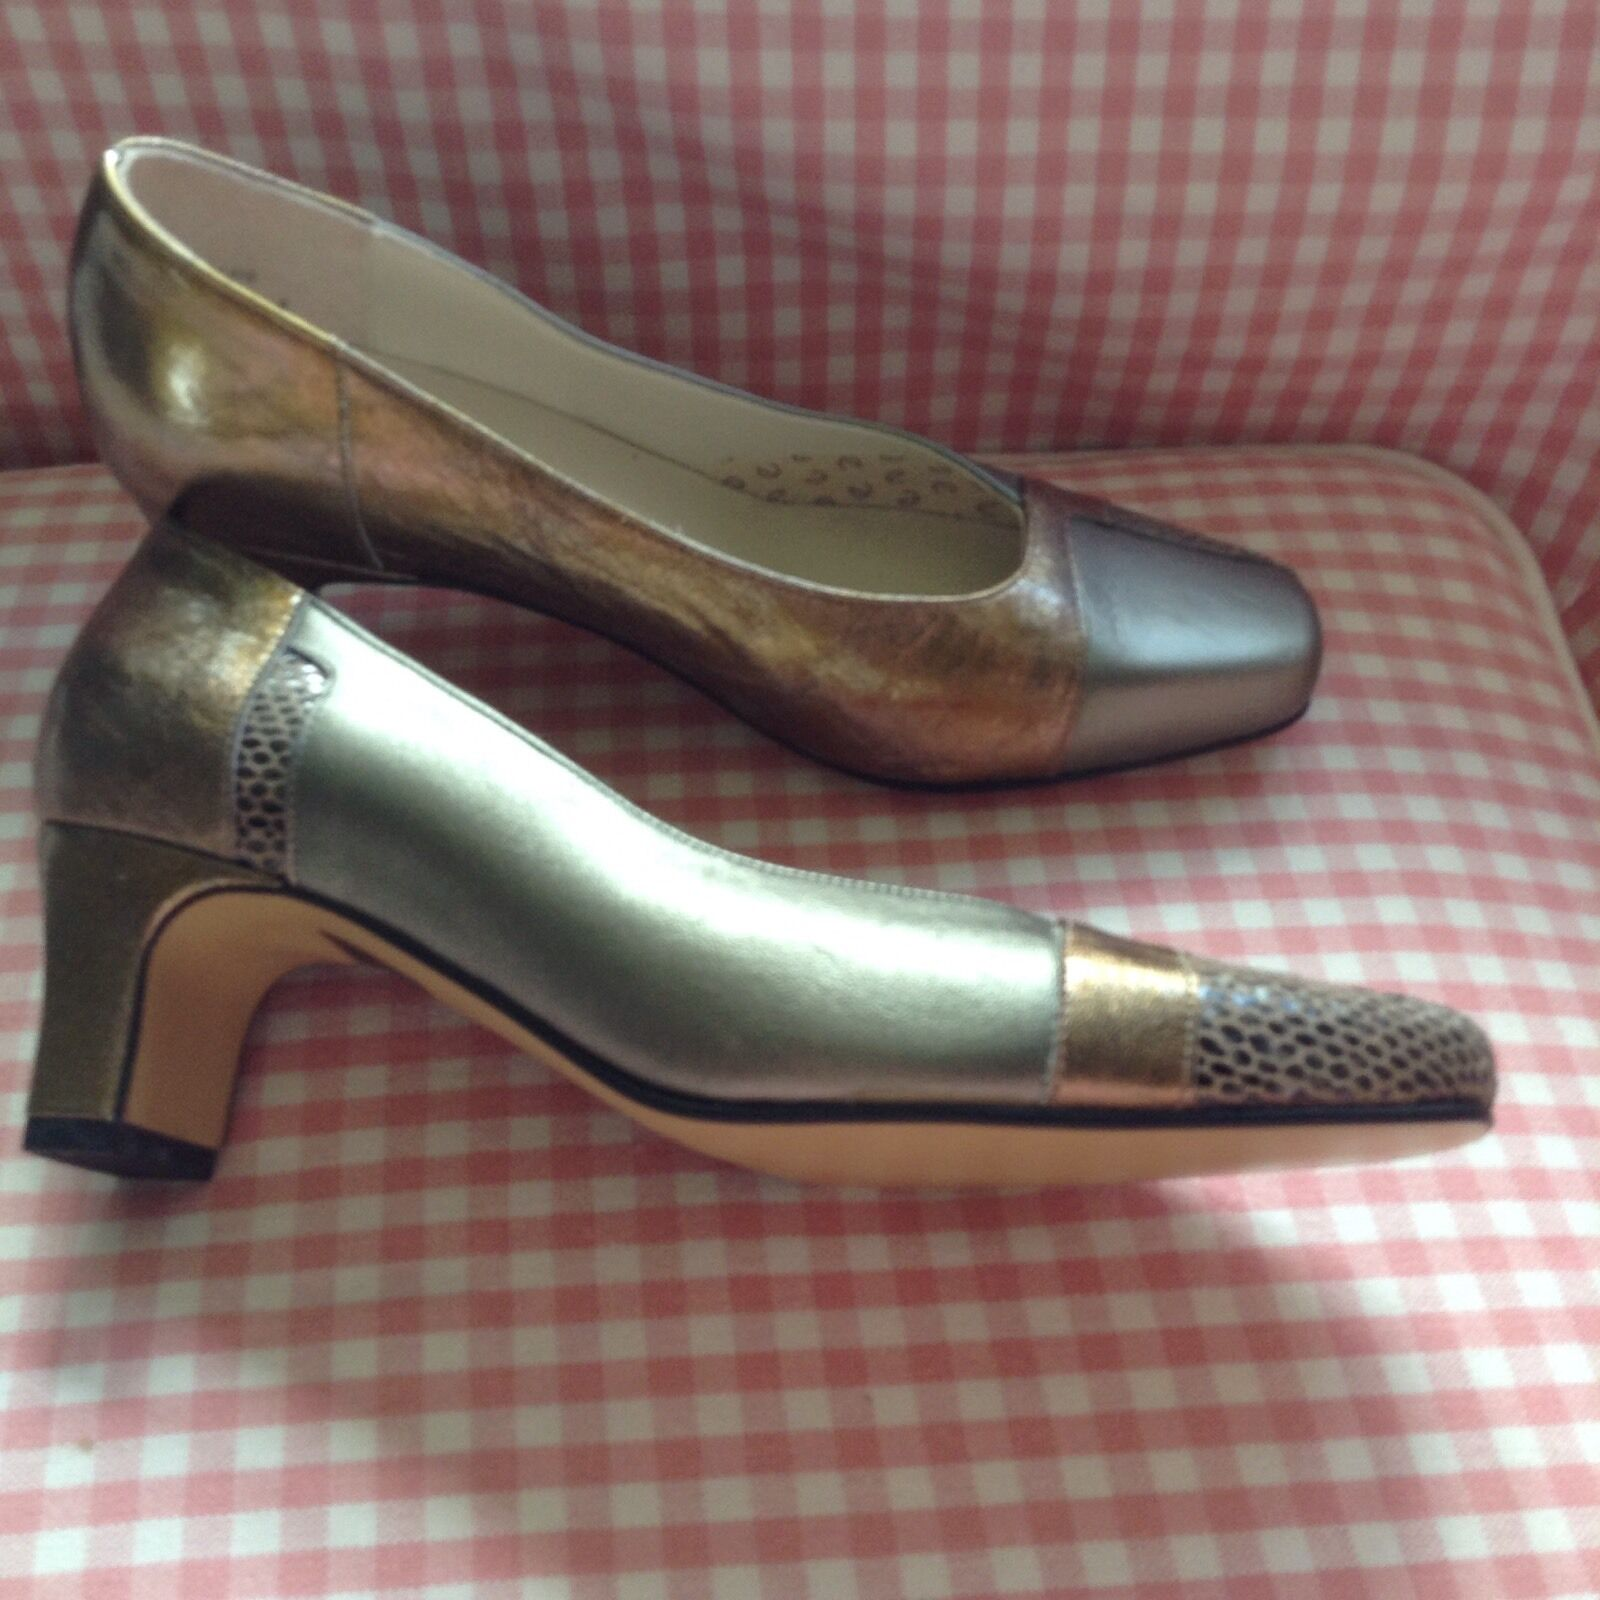 Equity bronze leather court shoes size 4.5 (EU 37)